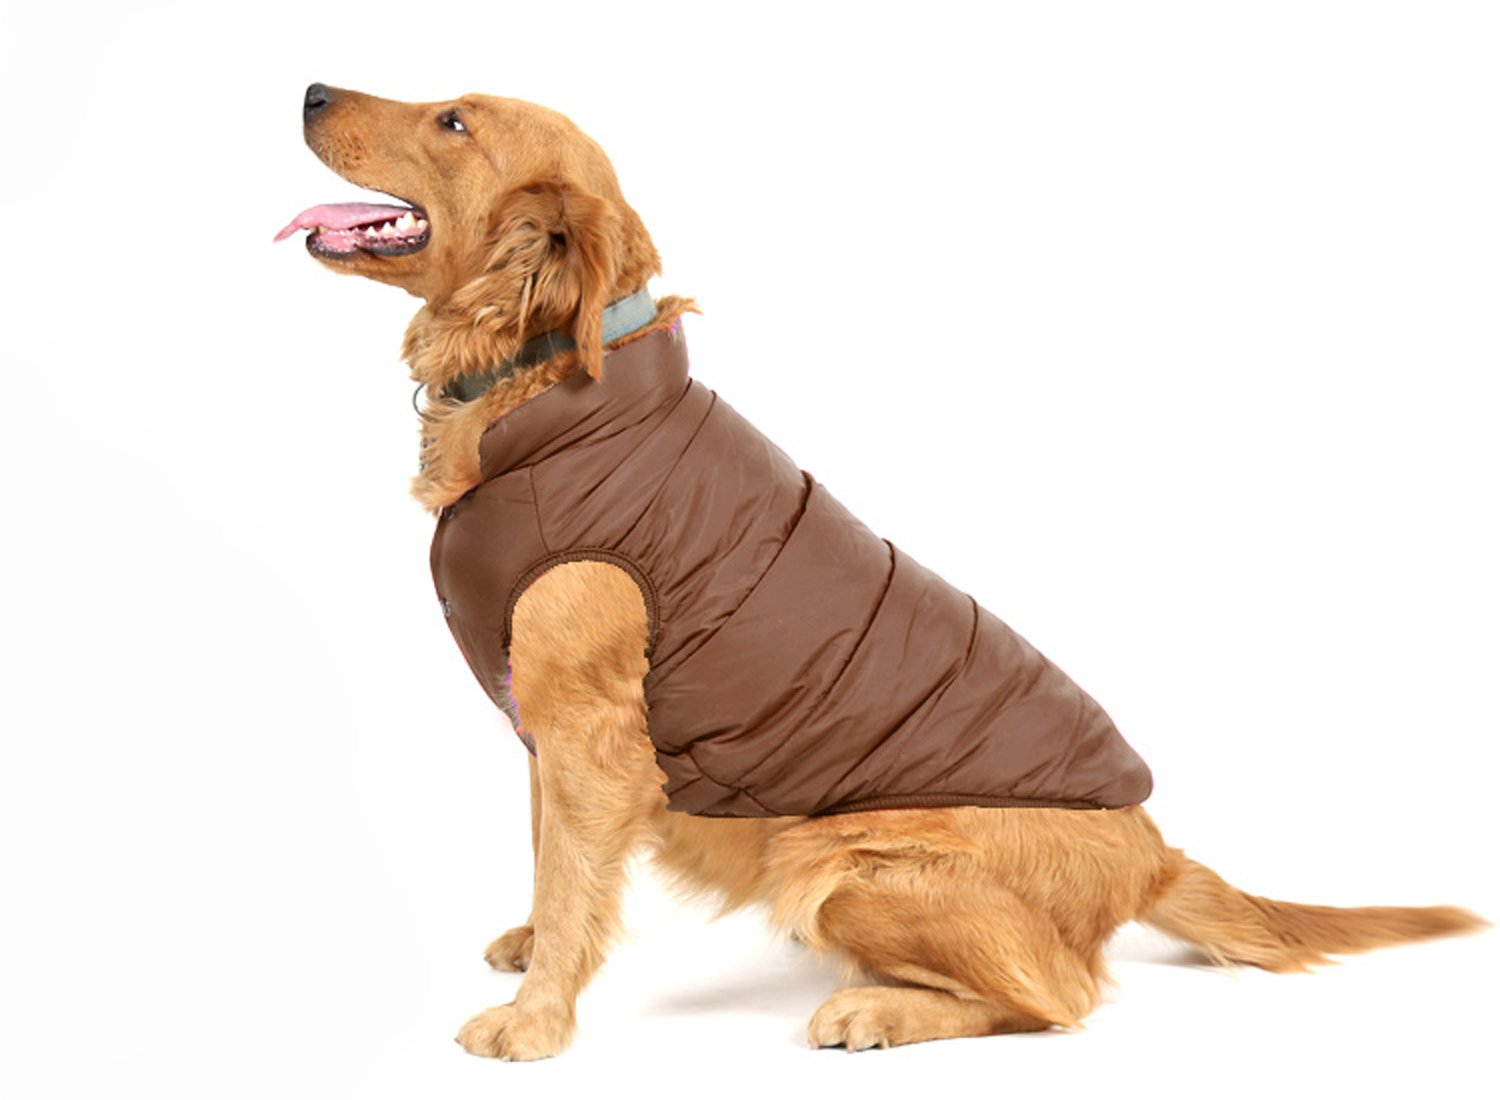 Brown L Brown L PENIVO Pet Dogs Clothing, Winter Warm Coats Jackets Small Medium Large Dogs Cotton-Padded Two Feet Clothes (L, Brown)